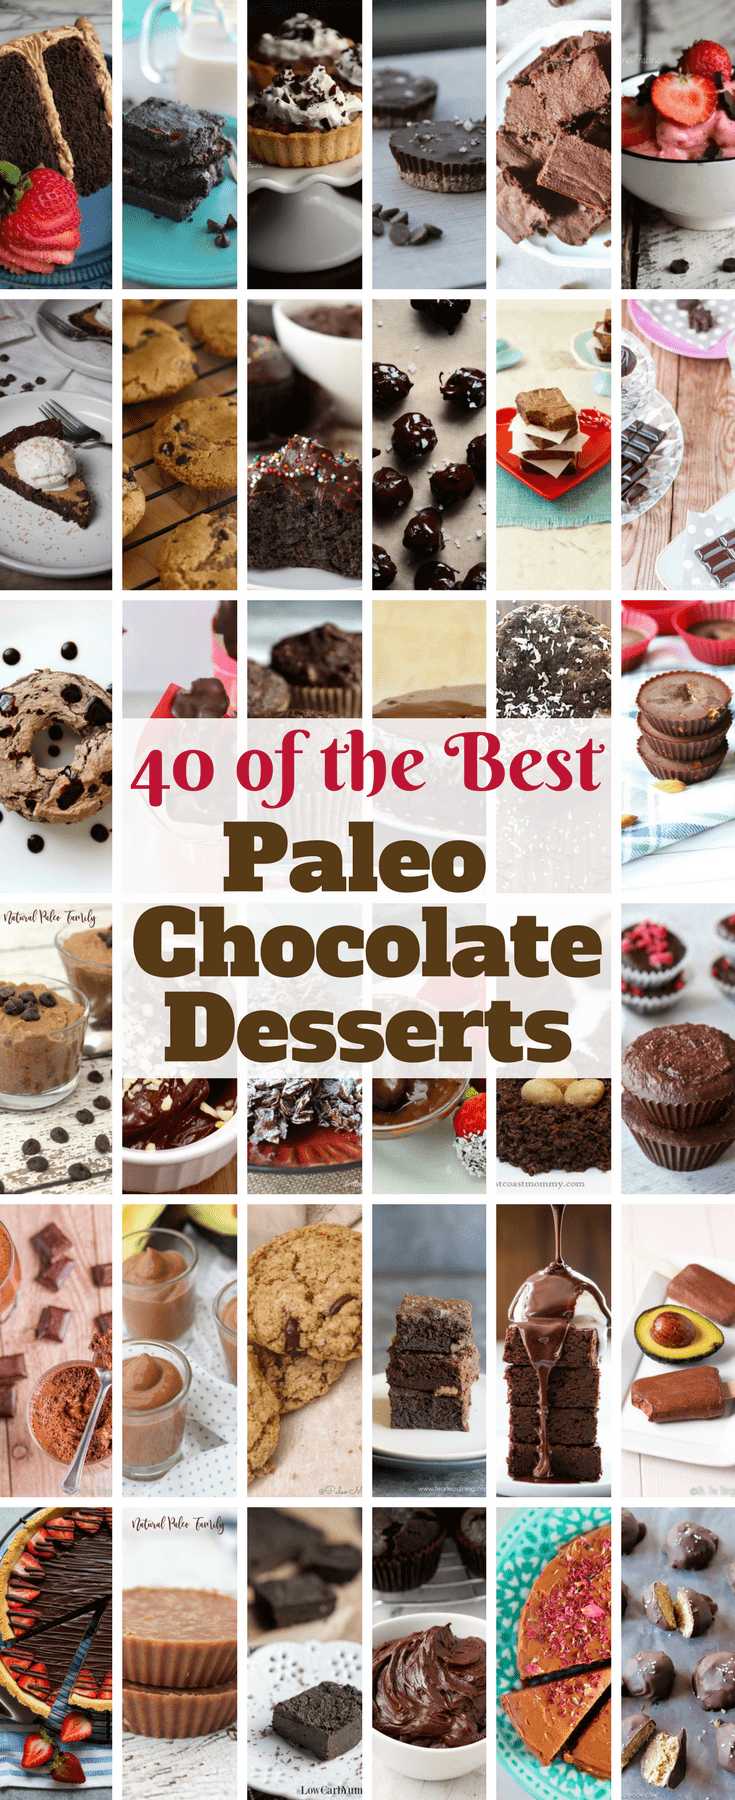 Chocolate is so festive for any time of year! Enjoy this collection of forty of the best Paleo chocolate desserts on the web!